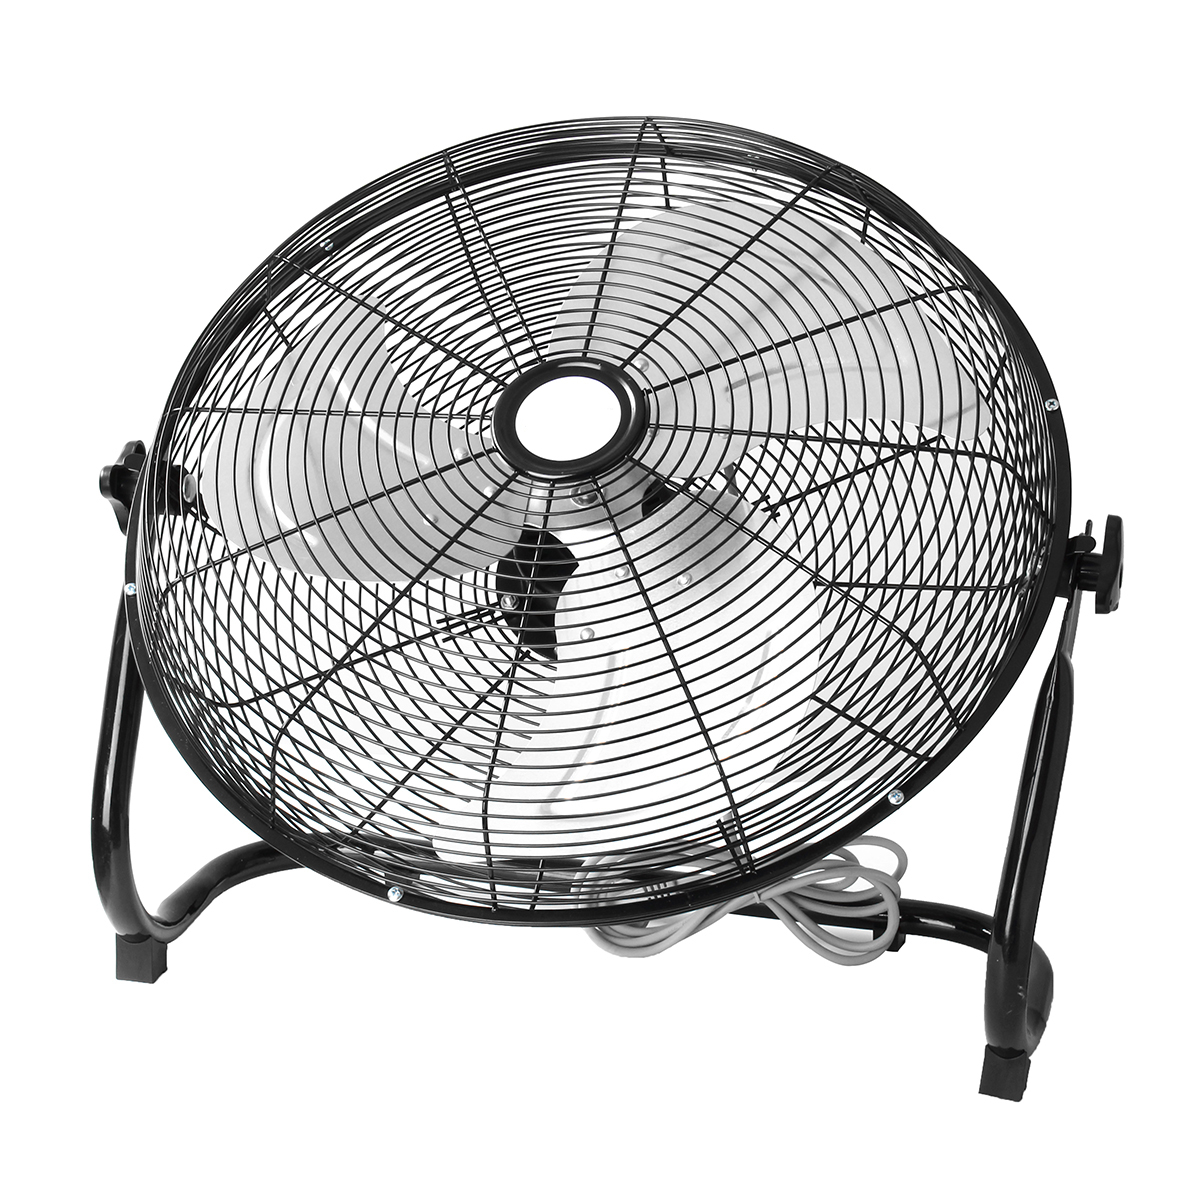 20 Inch Floor Fan : Inch industrial floor desk fan high velocity air